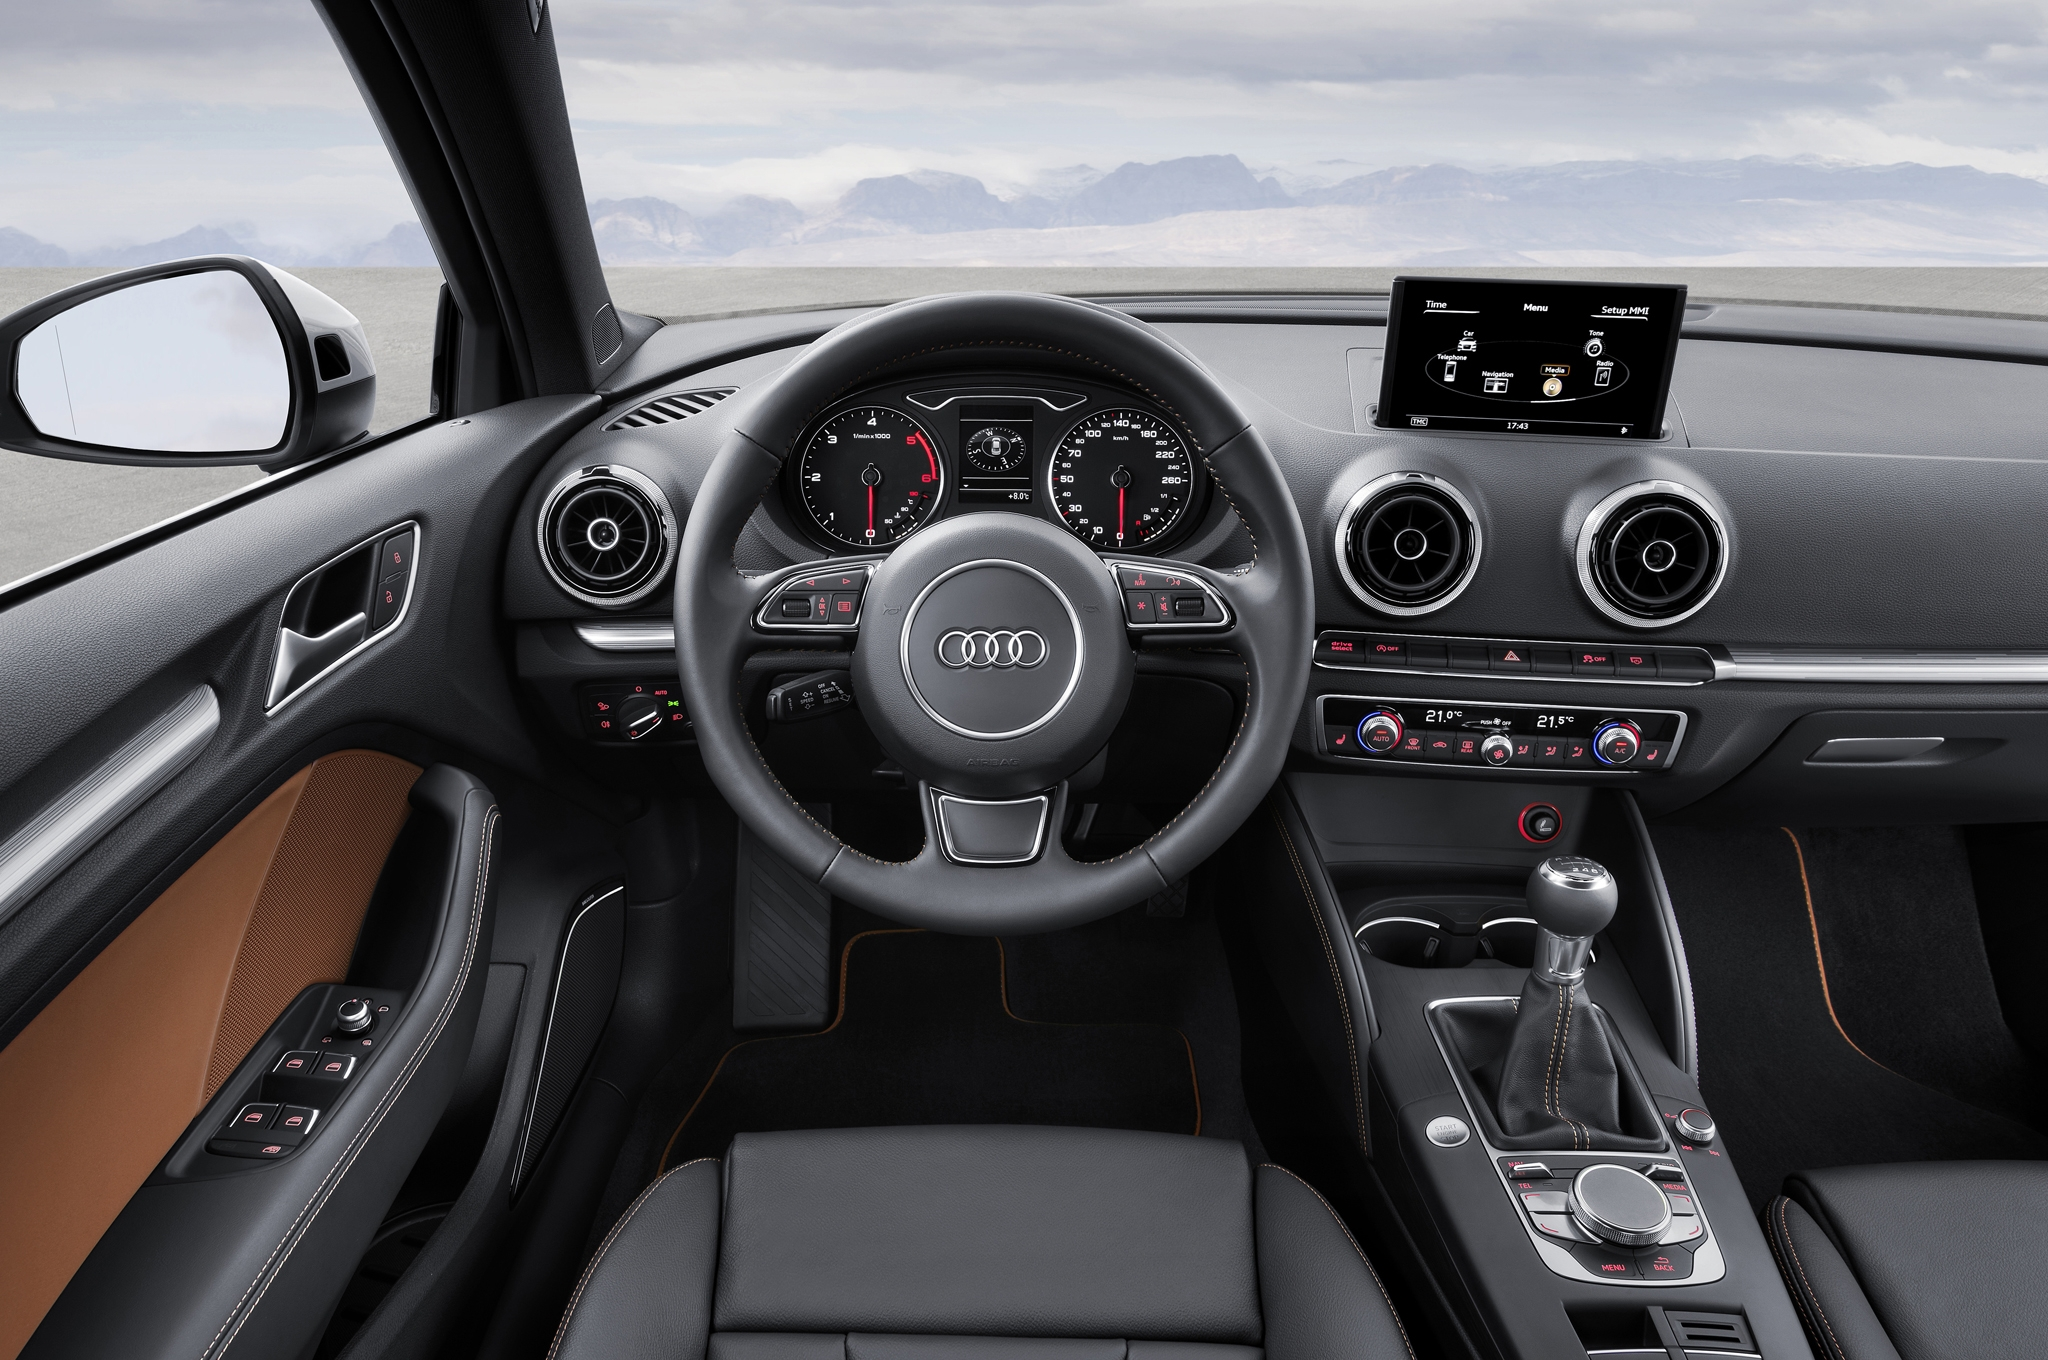 2015 Audi S3 Sedan Cockpit And Dashboard Interior (Photo 2 of 10)